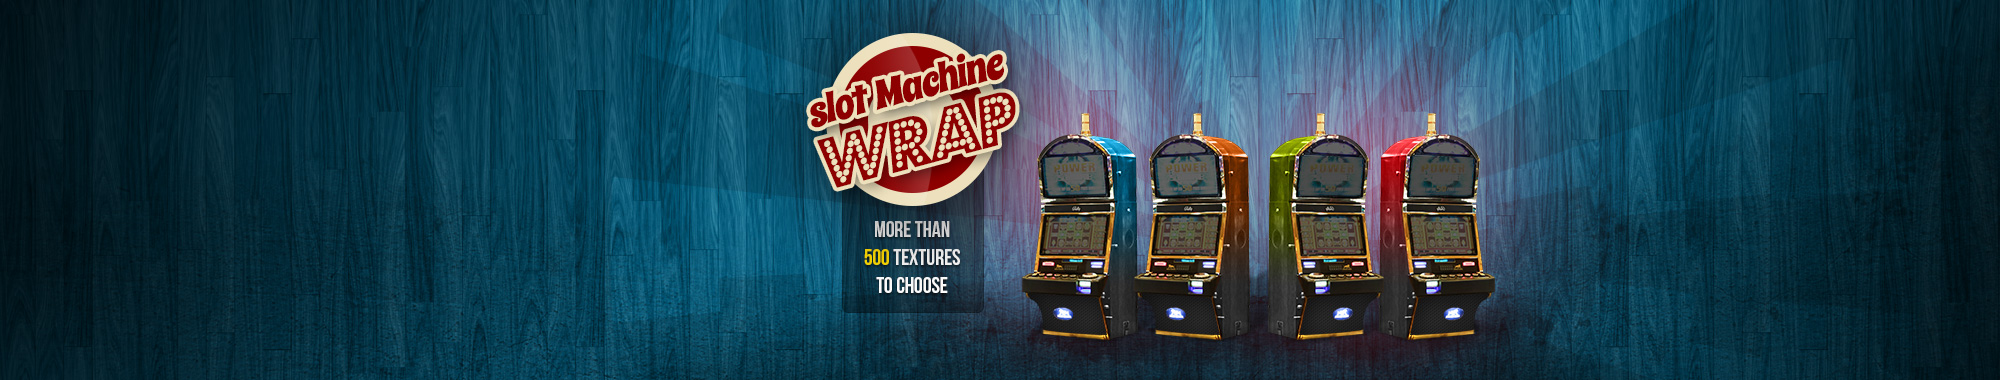 slote-machine-wraps